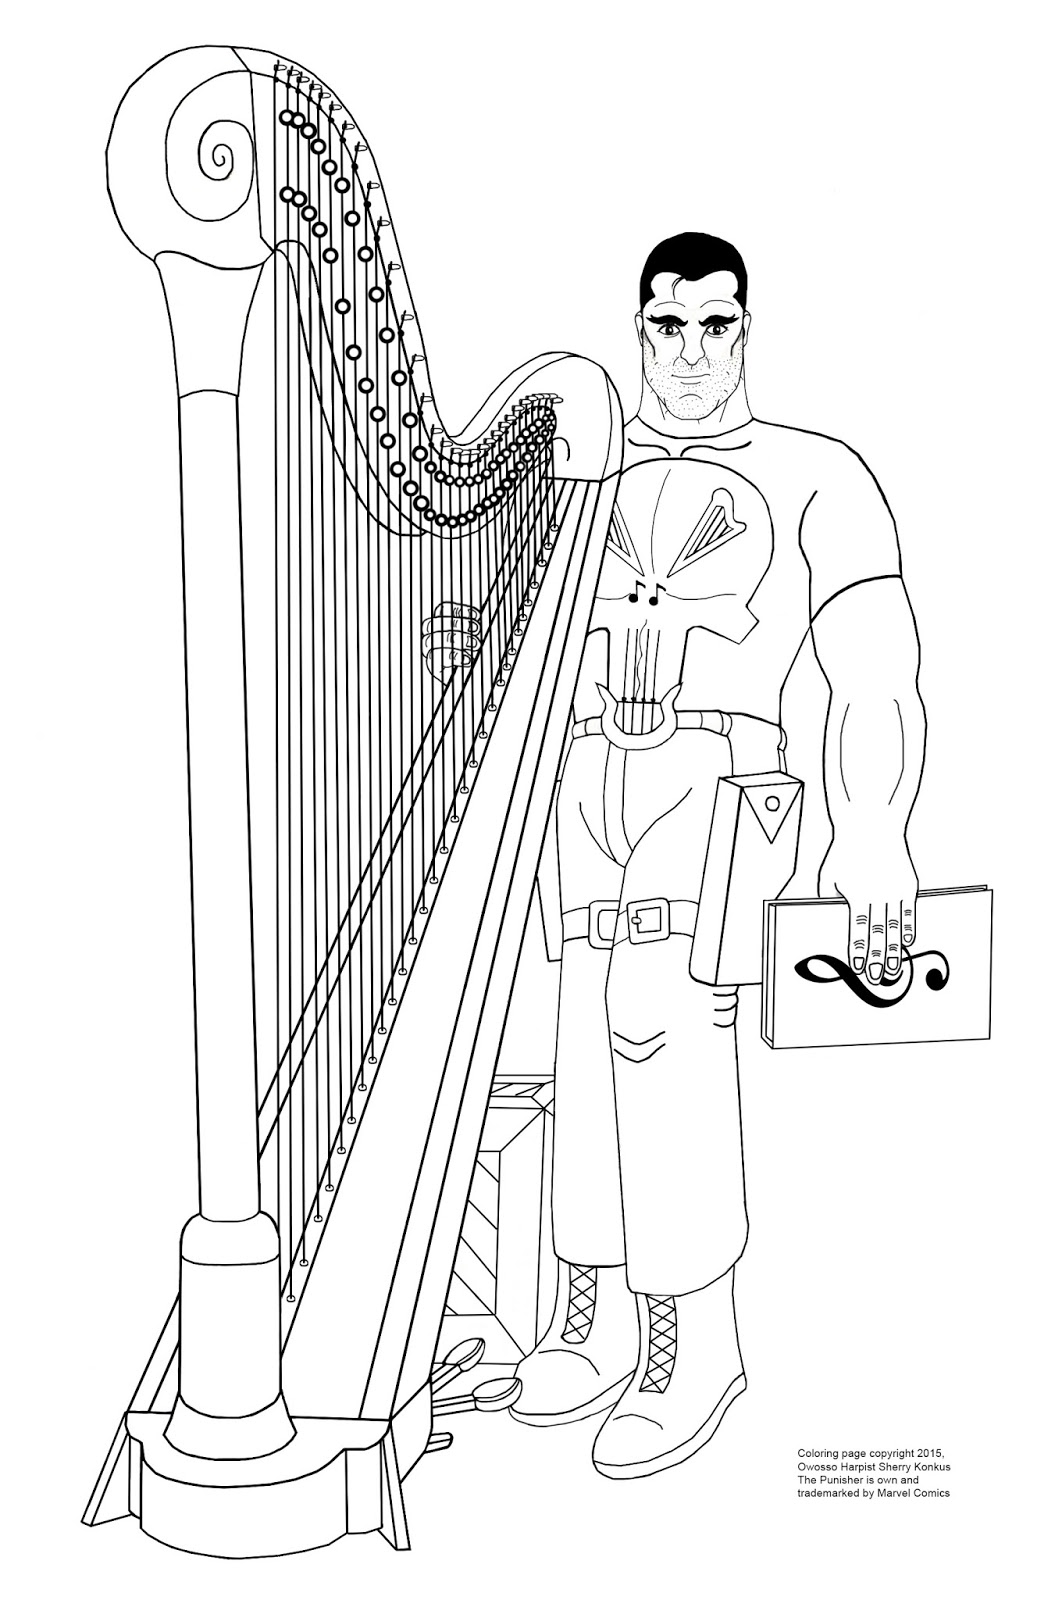 The Punisher and his harp